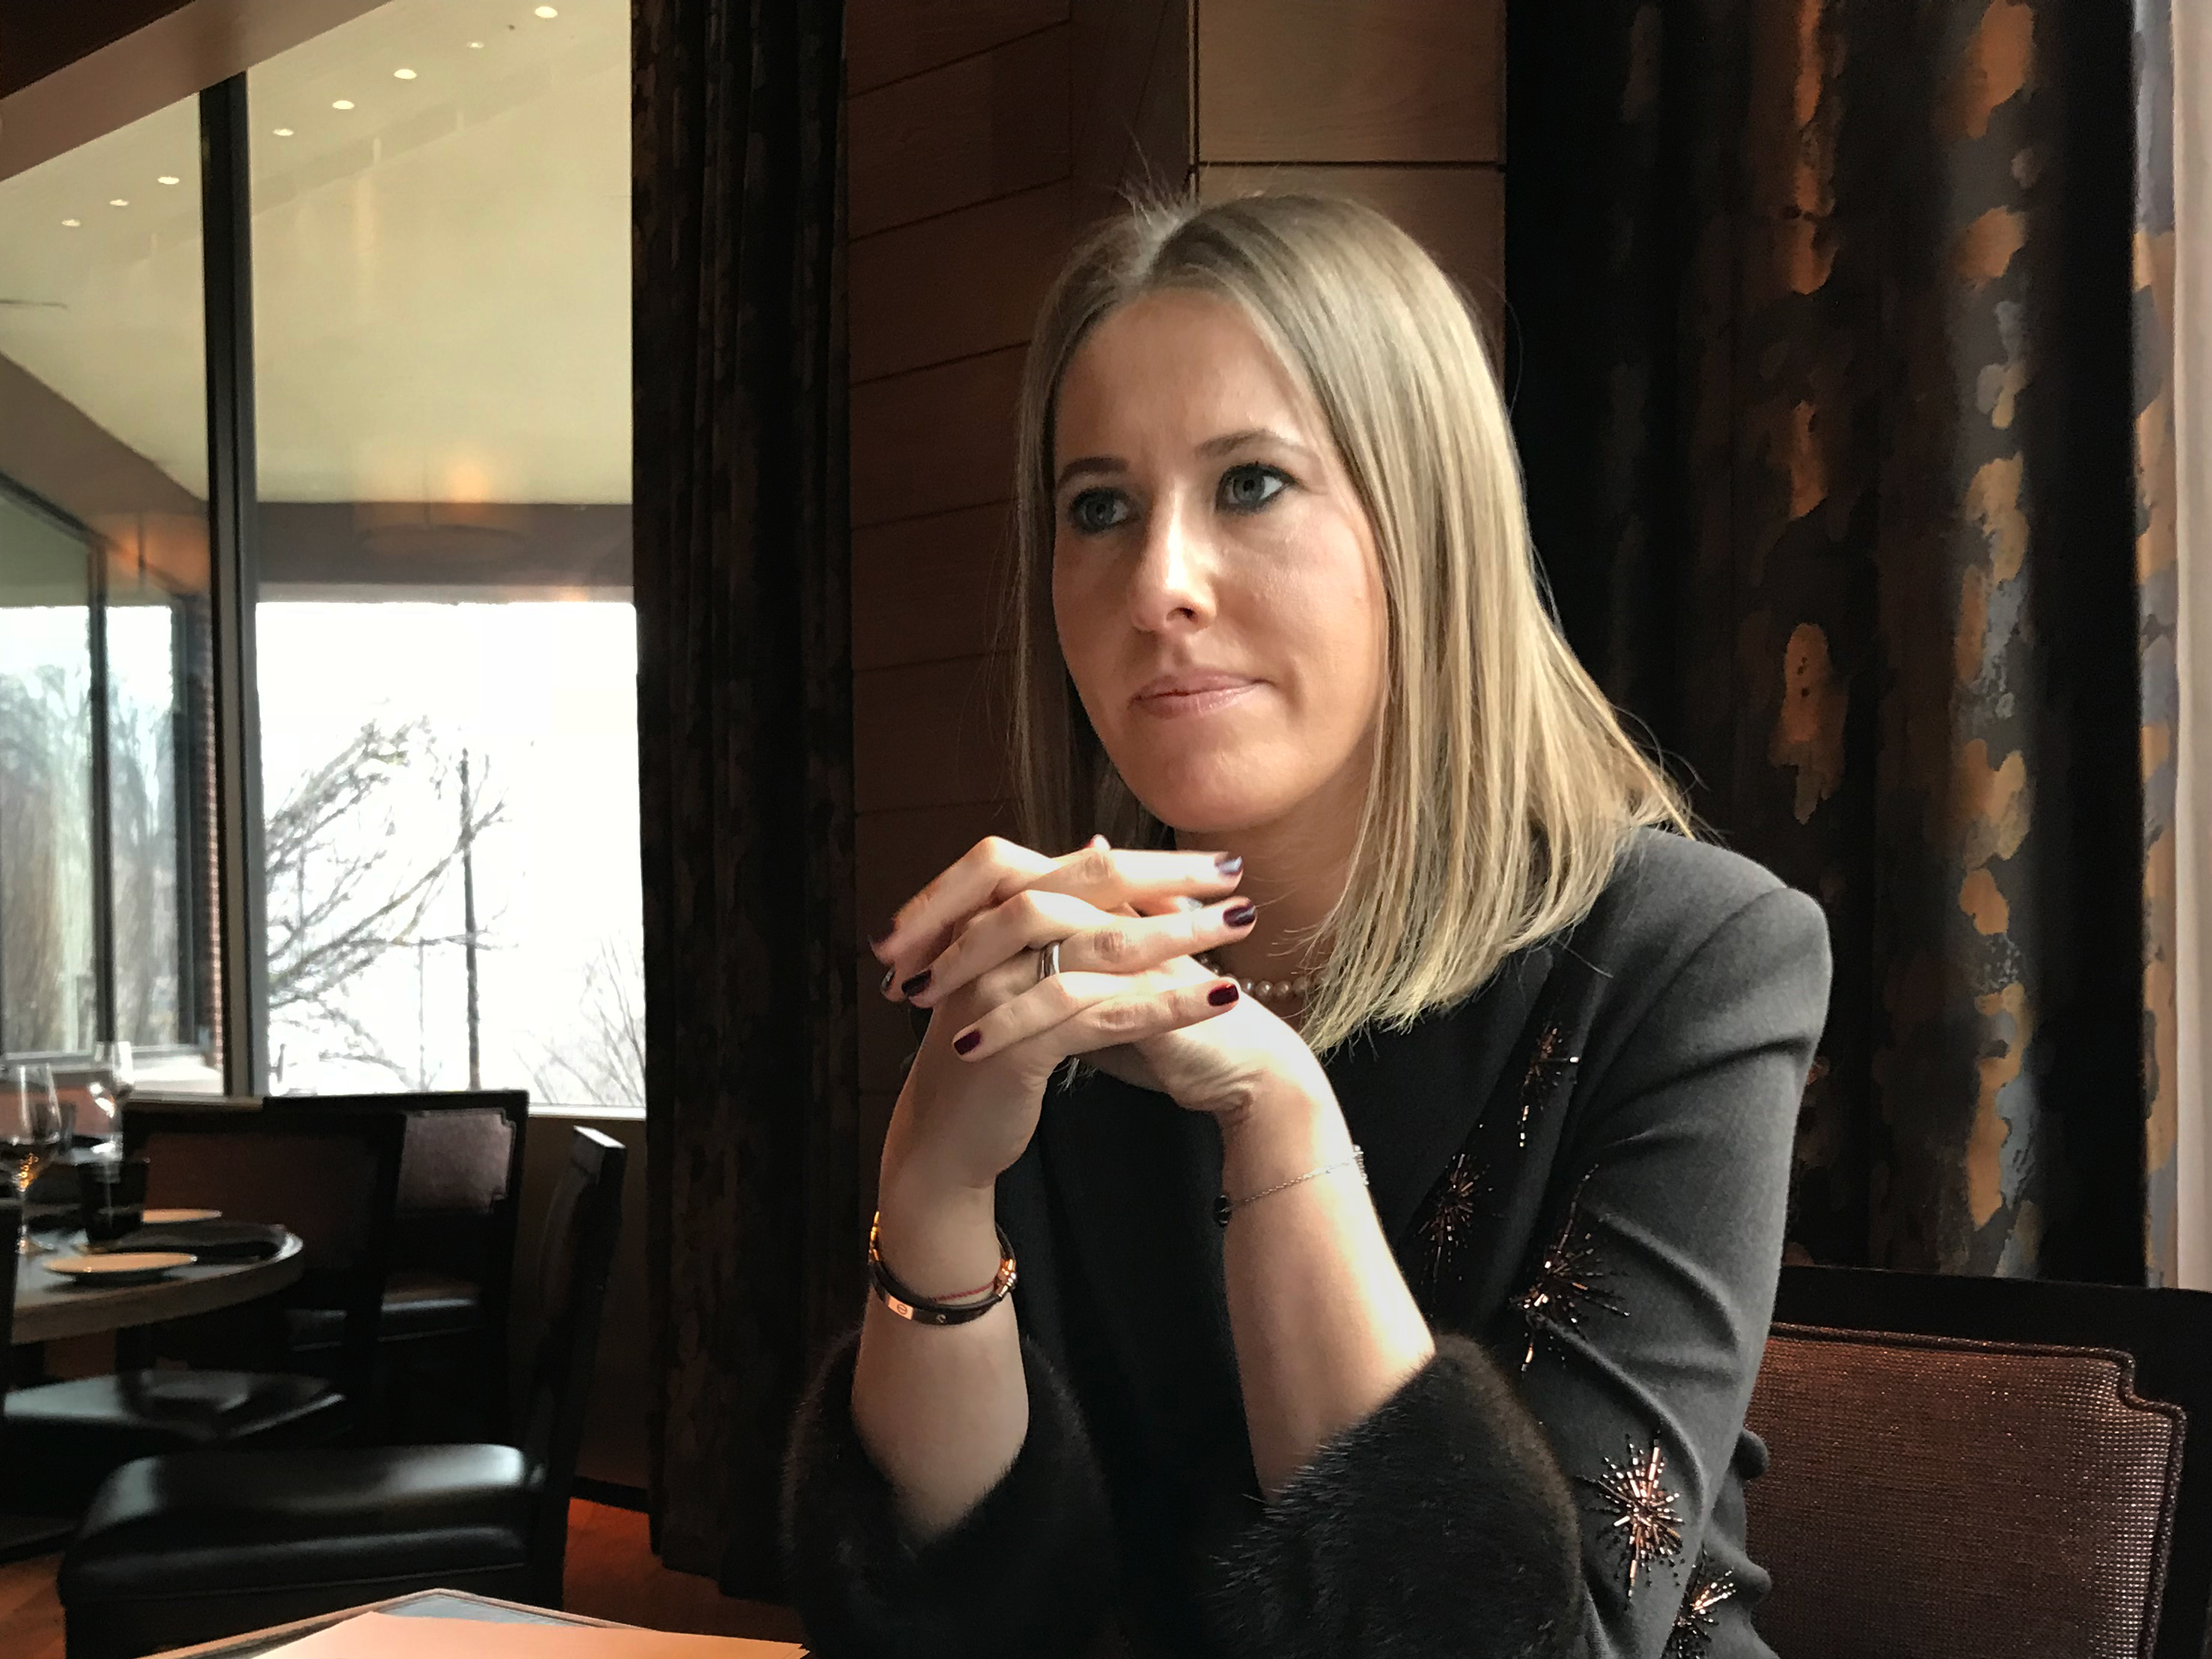 Ksenia Sobchak is ready to reduce the number of gays in the country 06/05/2011